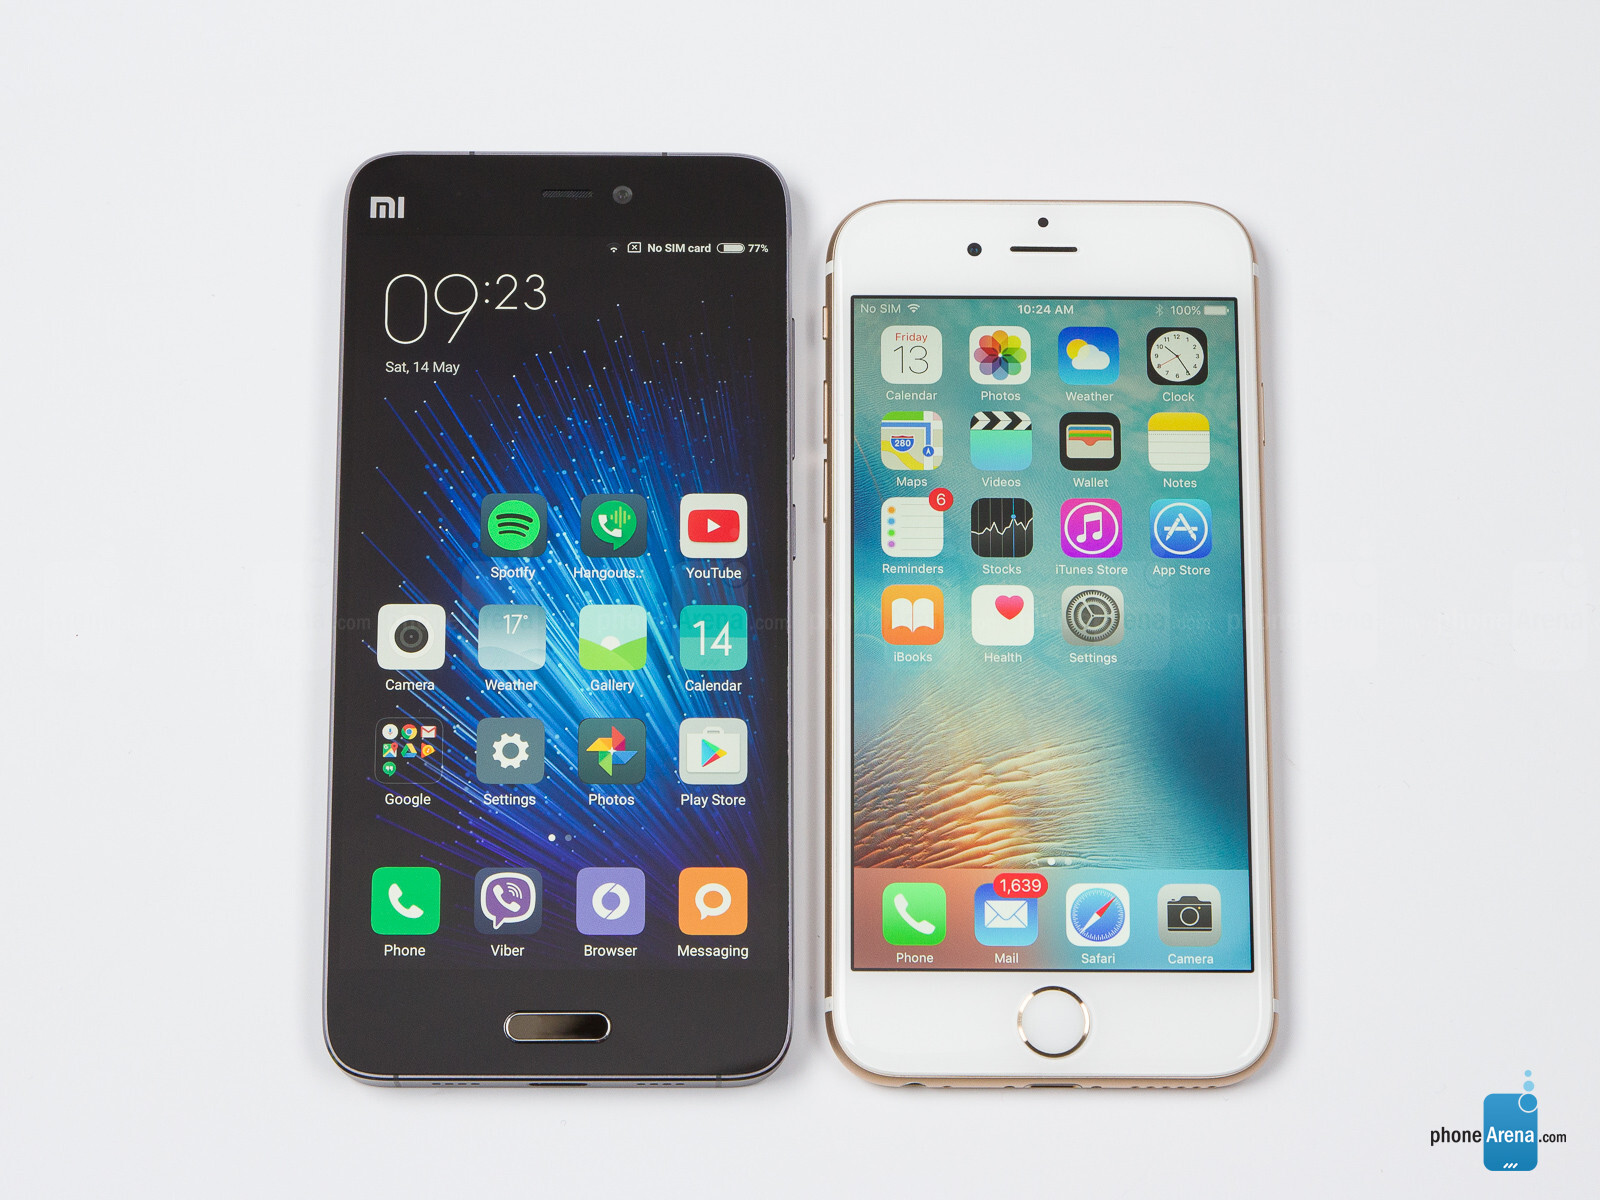 xiaomi mi 5 vs iphone 6s plus fotoqualität